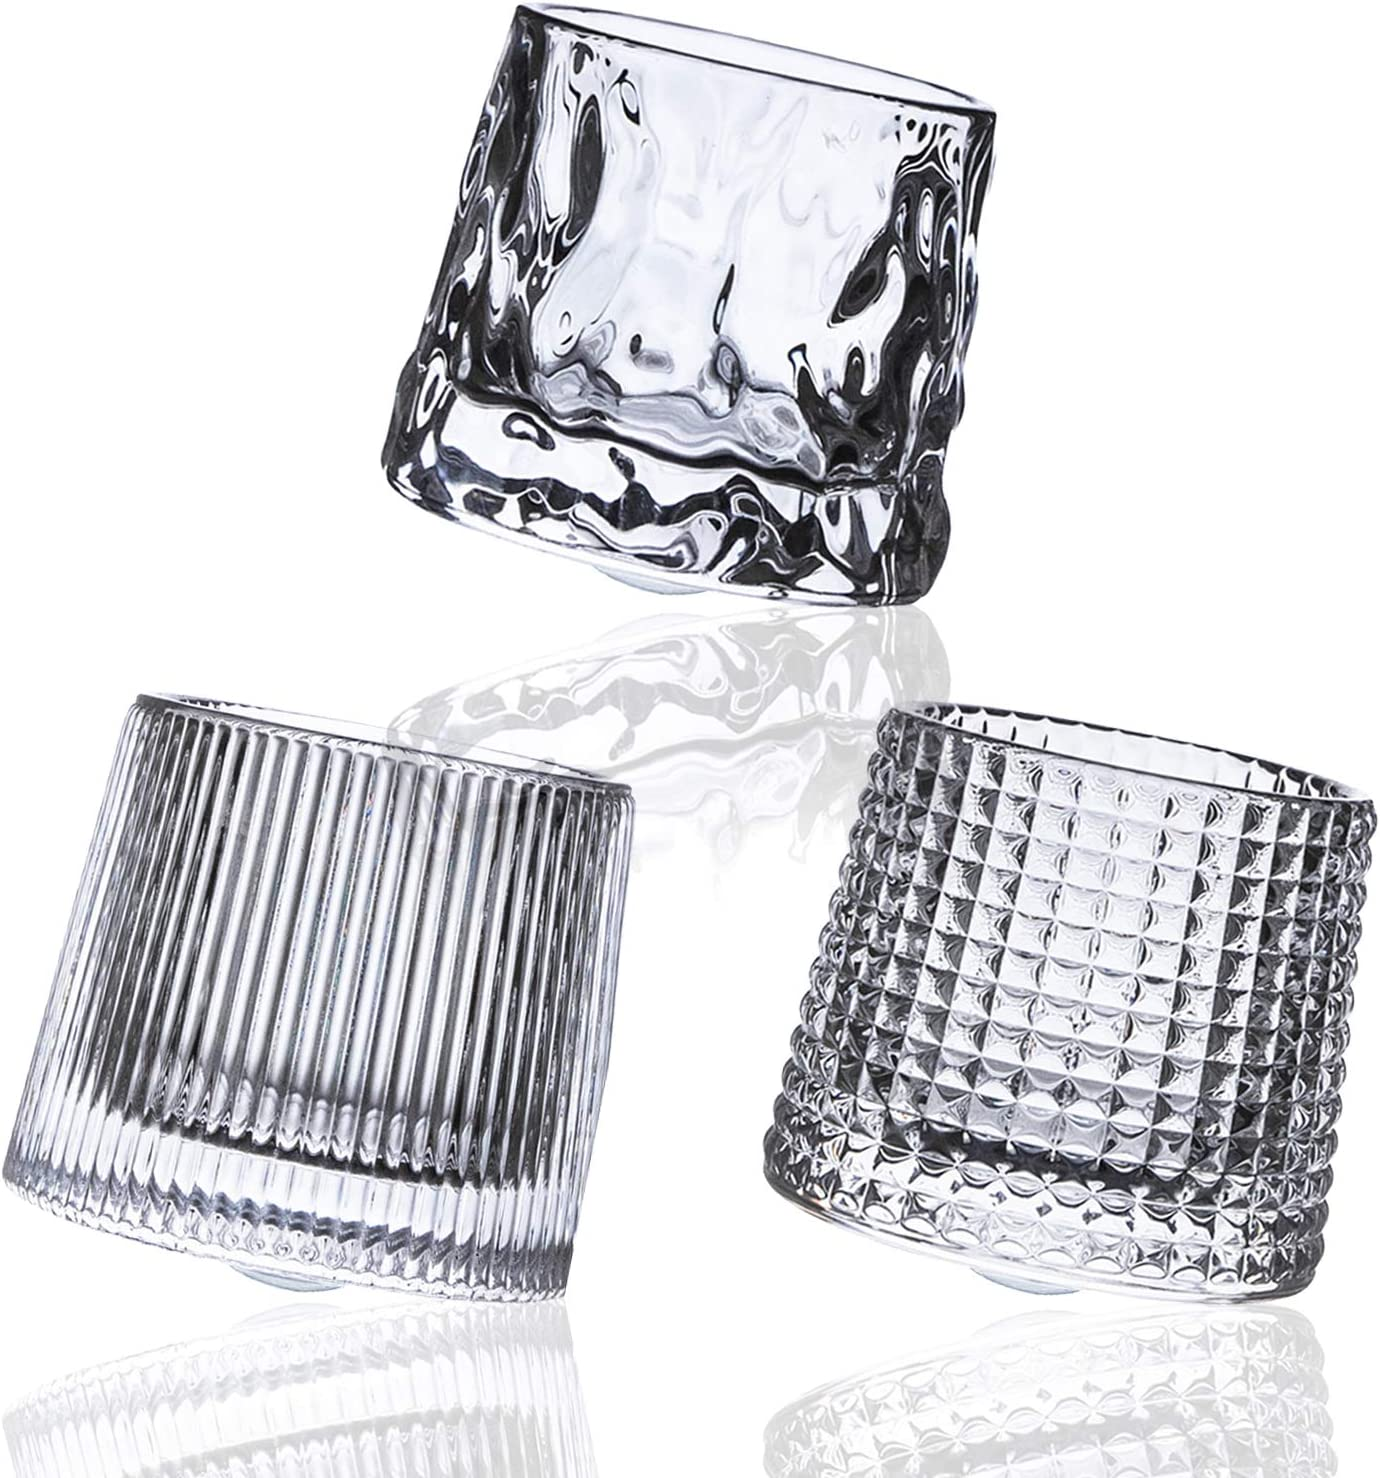 Crystal Whiskey Glasses 5 OZ Set of 3, Rotatable Old Fashioned Glasses, Tumbler Rocks Bar Glass for Drinking Bourbon, Scotch , Cocktails, Cognac